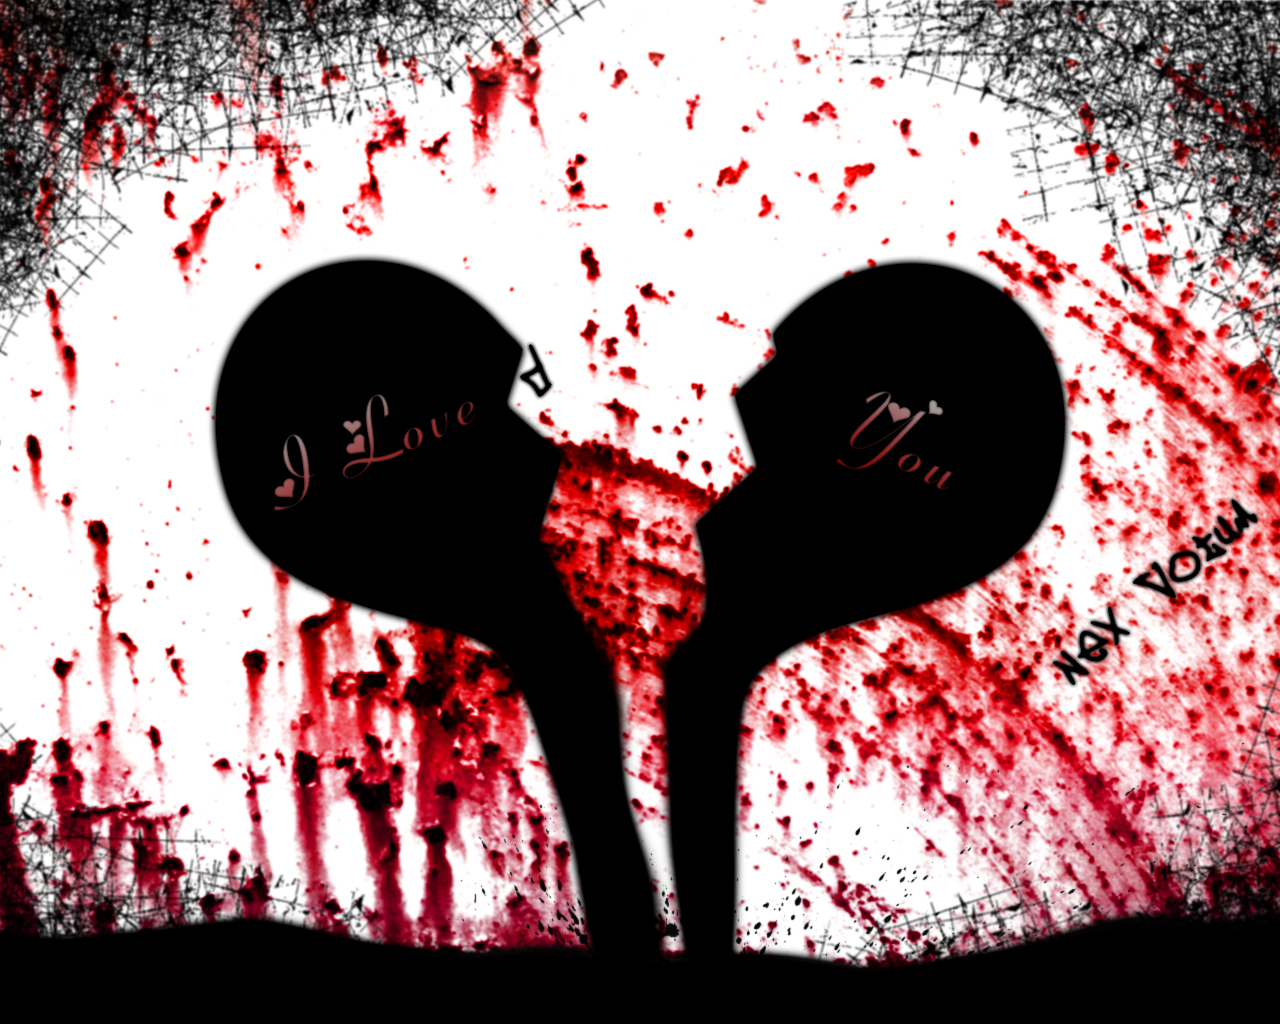 Love Broken couple Wallpaper : Broken Love Wallpapers - WallpaperSafari